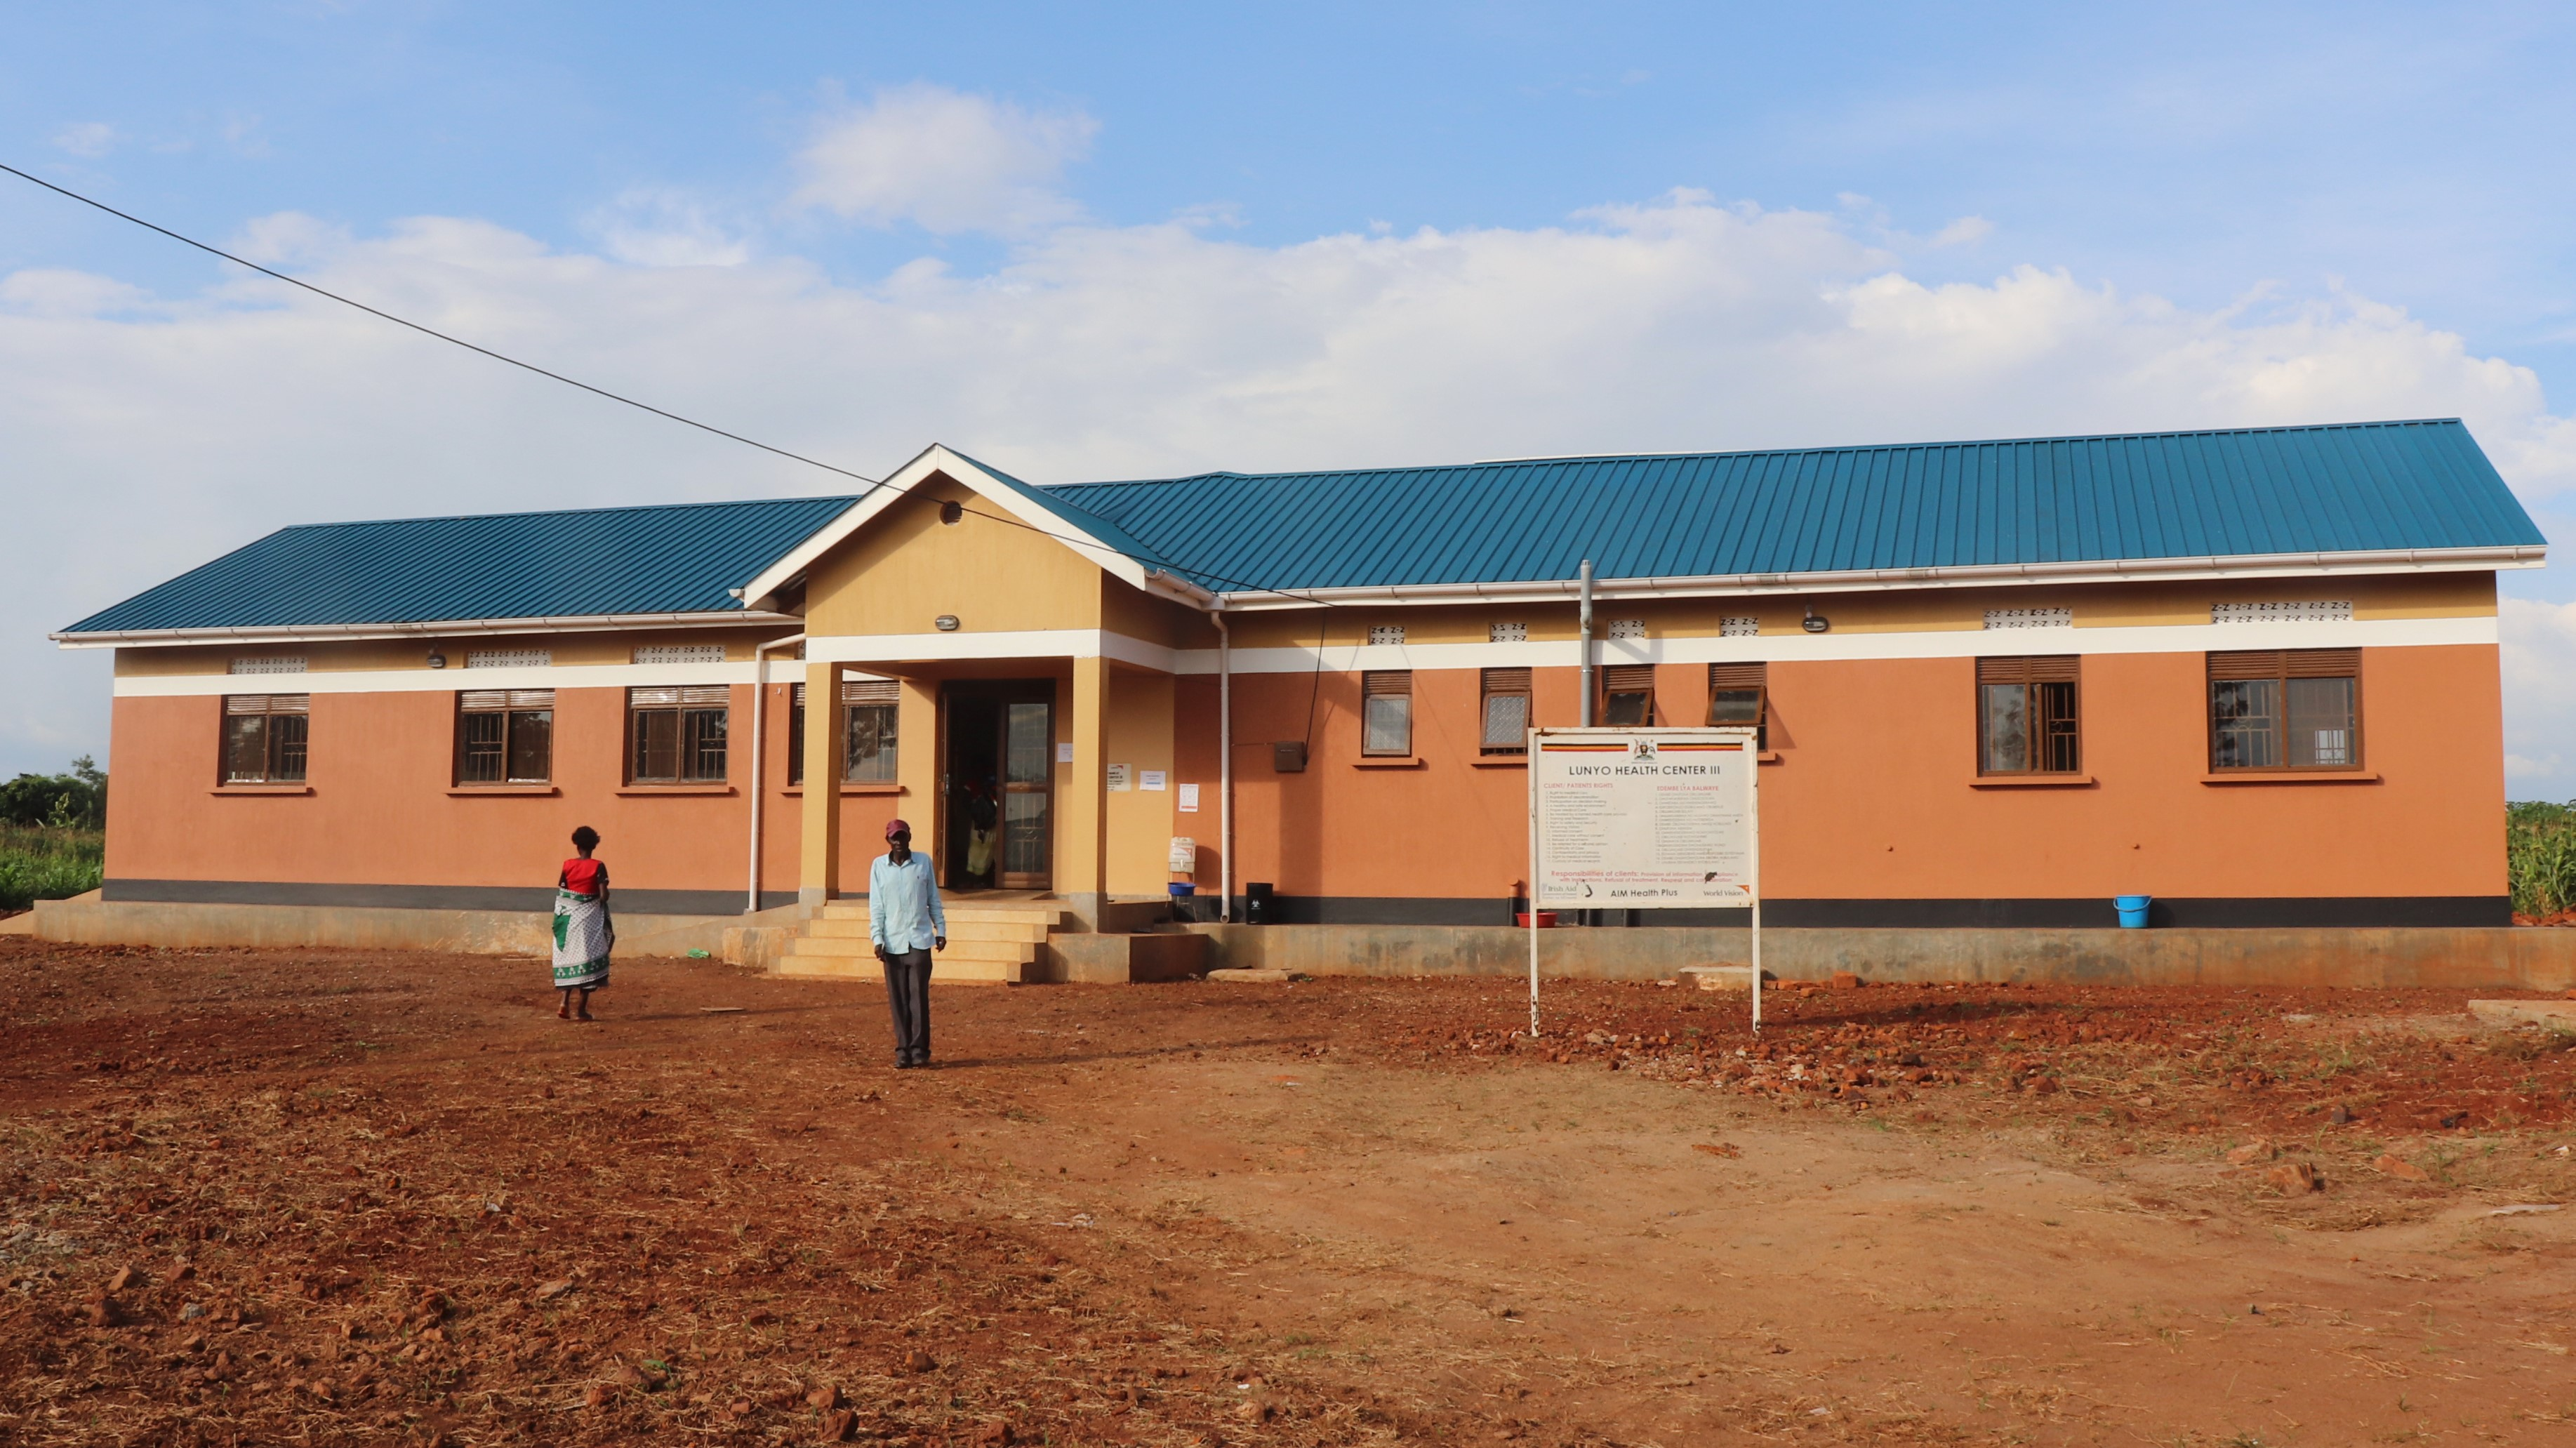 The new maternity ward is a sign of hope for mothers